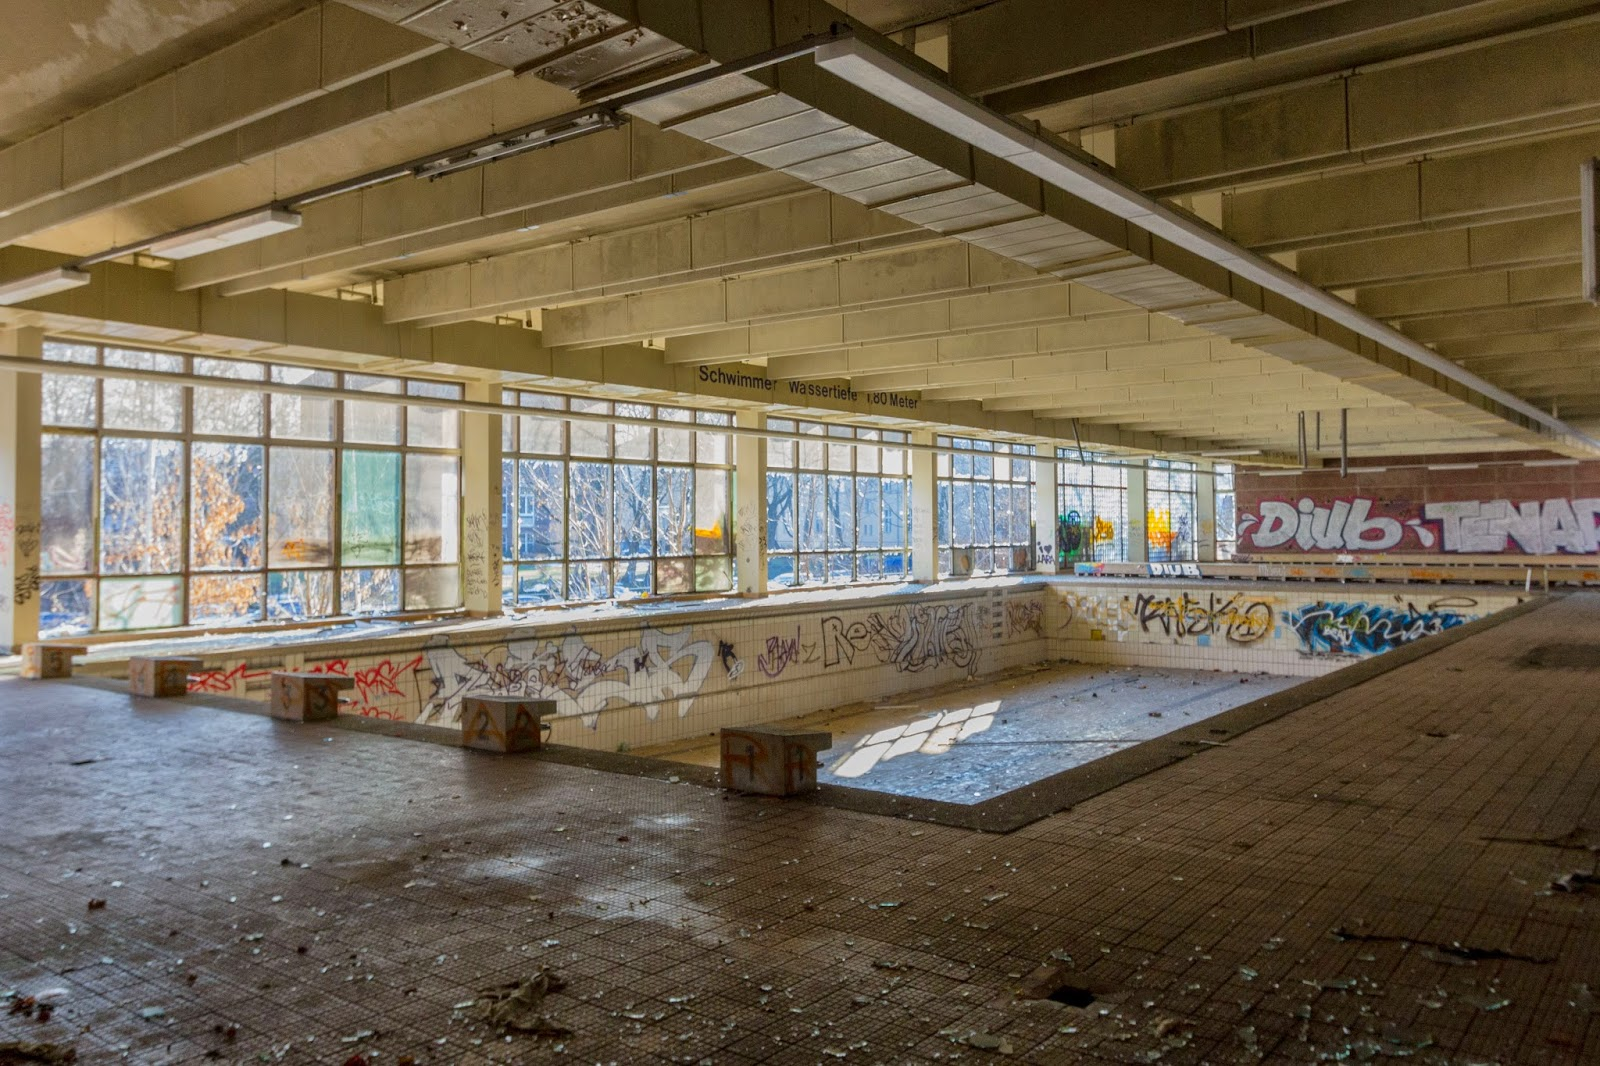 Swimming Pools In Berlin Last Smash Pankow Schwimmhalle Abandoned Berlin